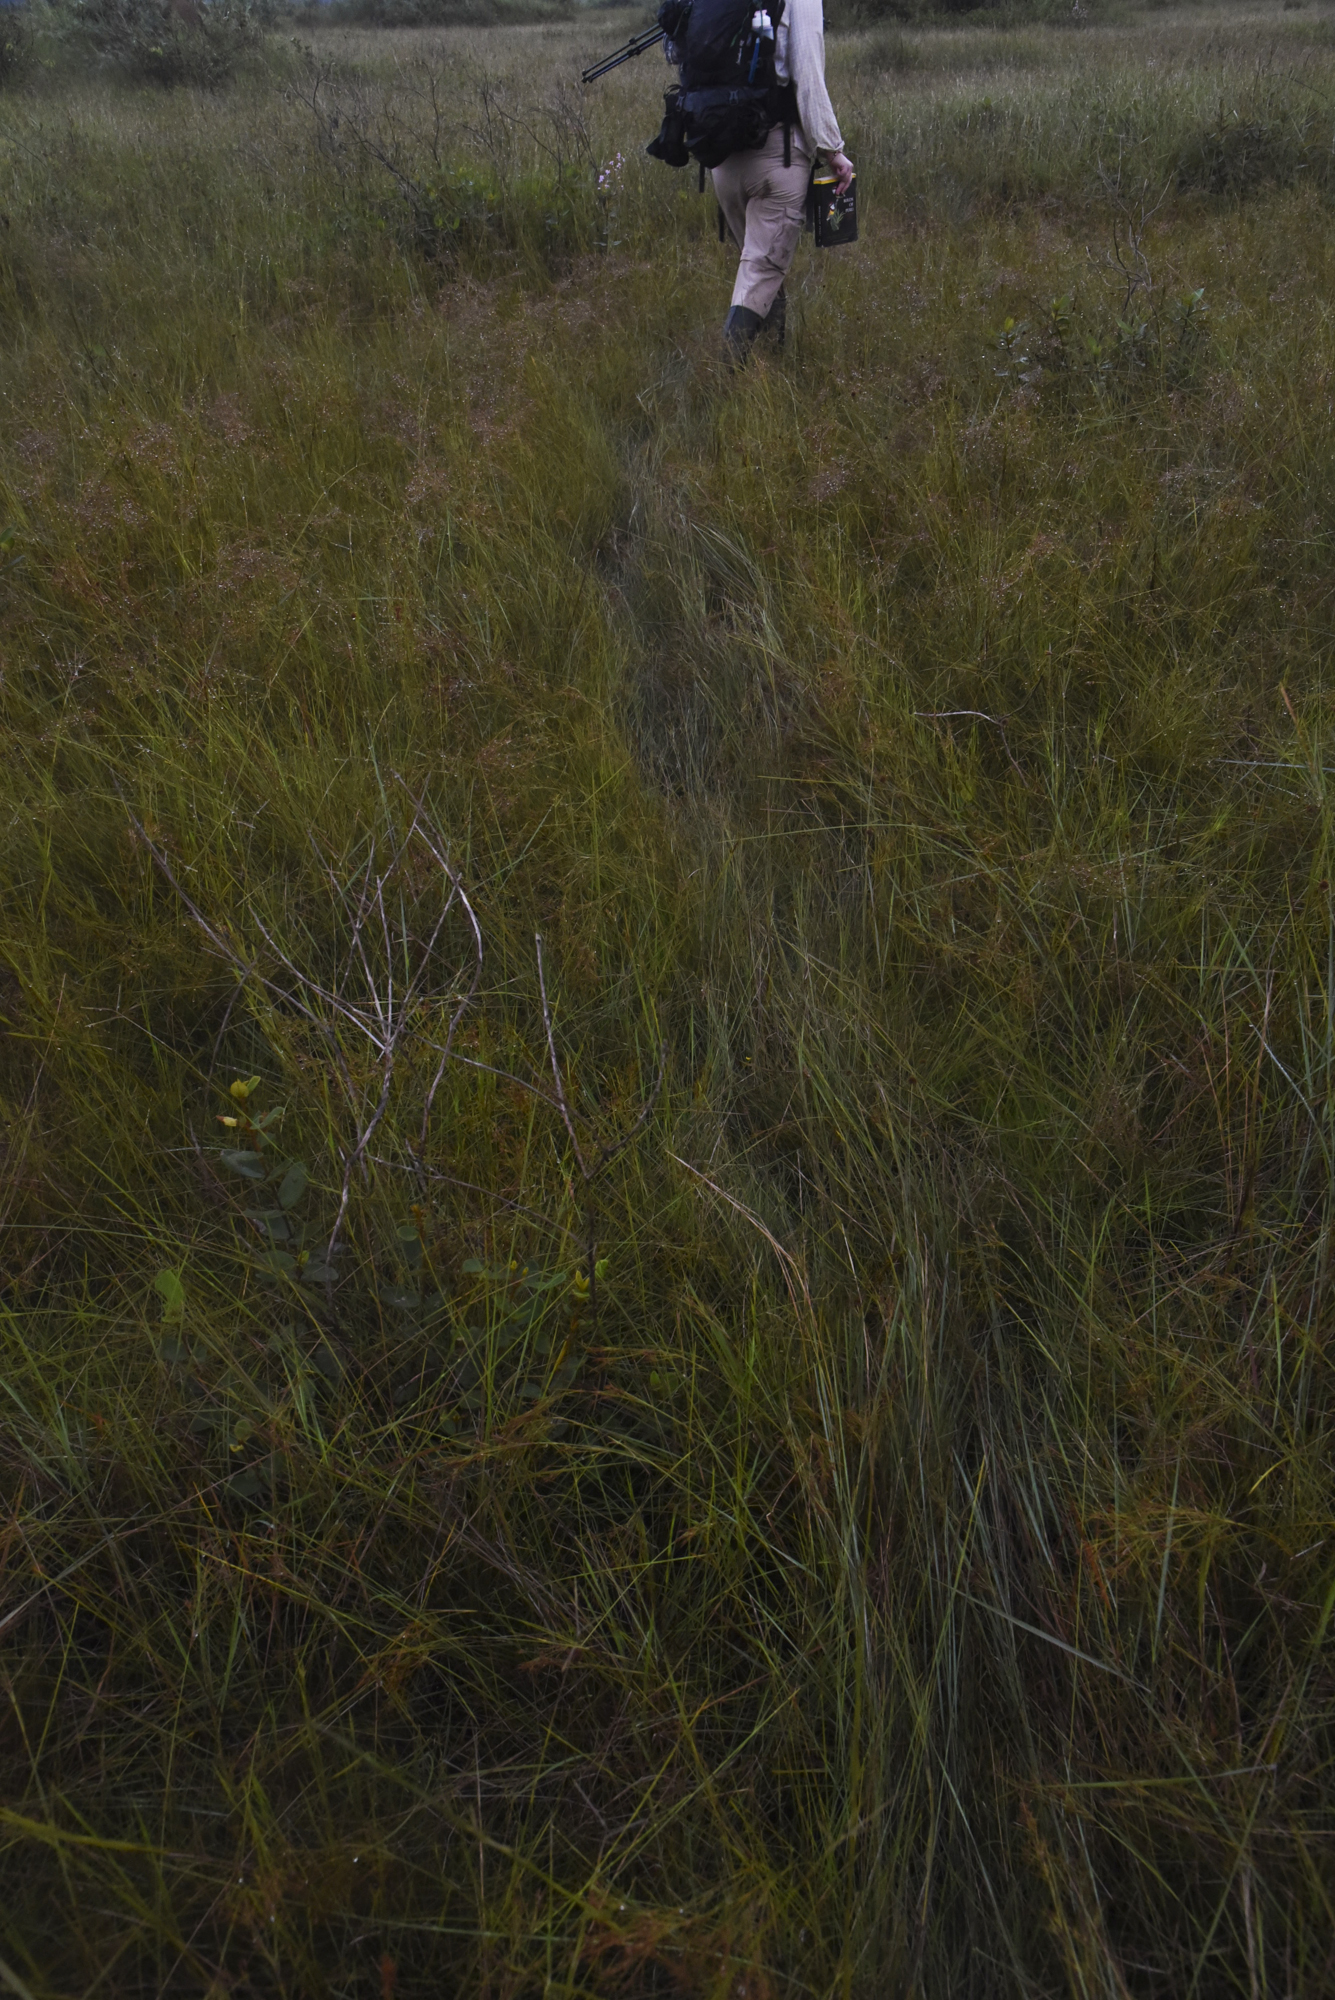 Heavy dew coats the grass on the Pampas de Heath savanna on the early morning hours of the 2019 Global Big Day.